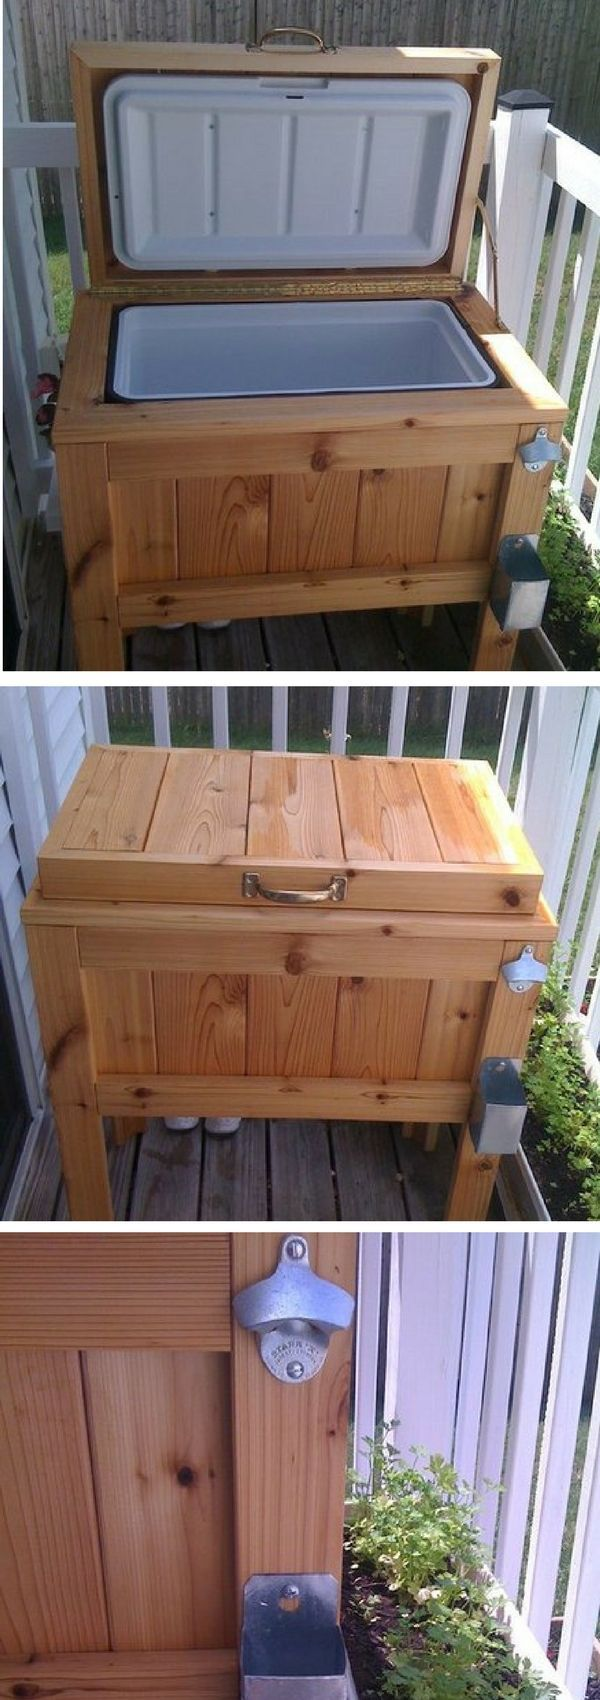 DIY footed patio cooler @istandarddesign